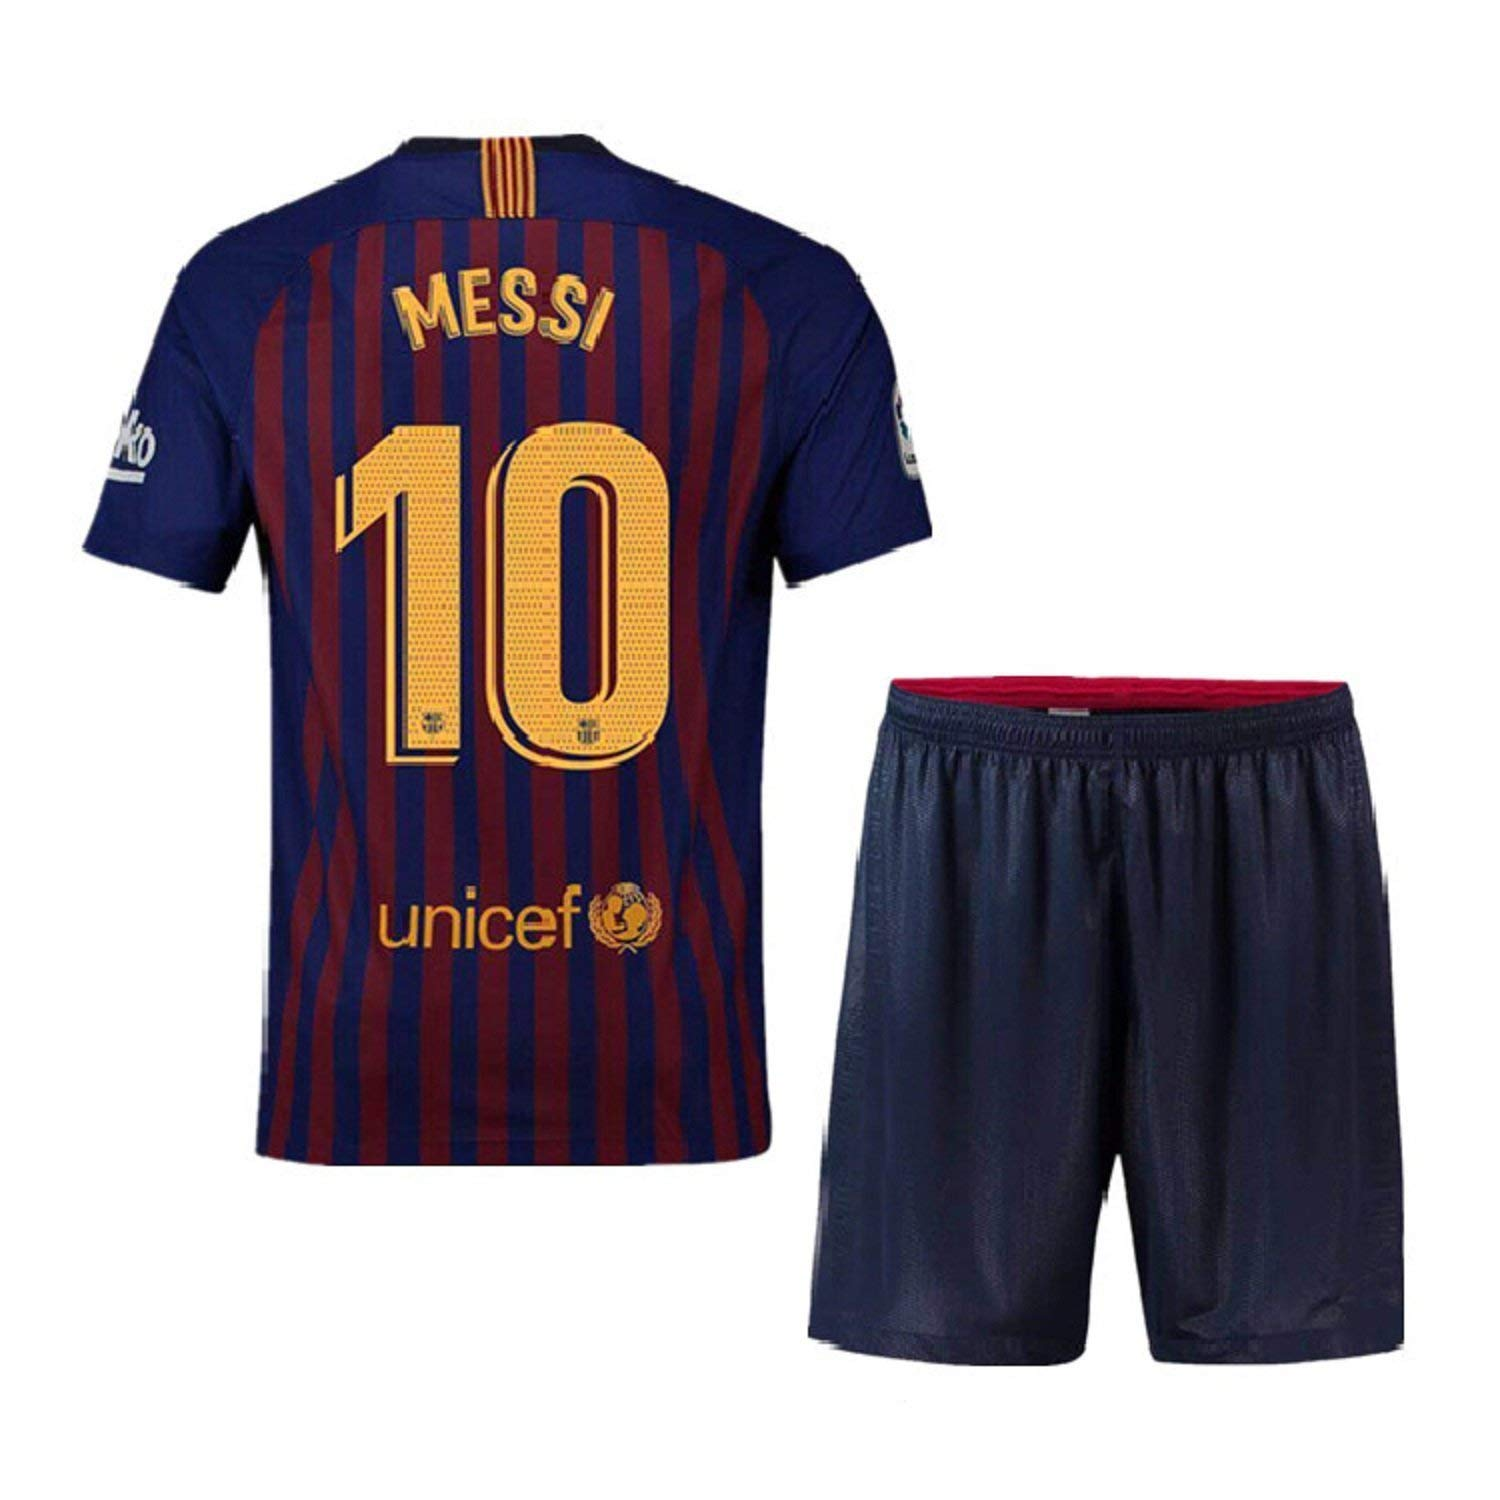 low priced aef44 b196c Cheap Messi Shirt Youth, find Messi Shirt Youth deals on ...